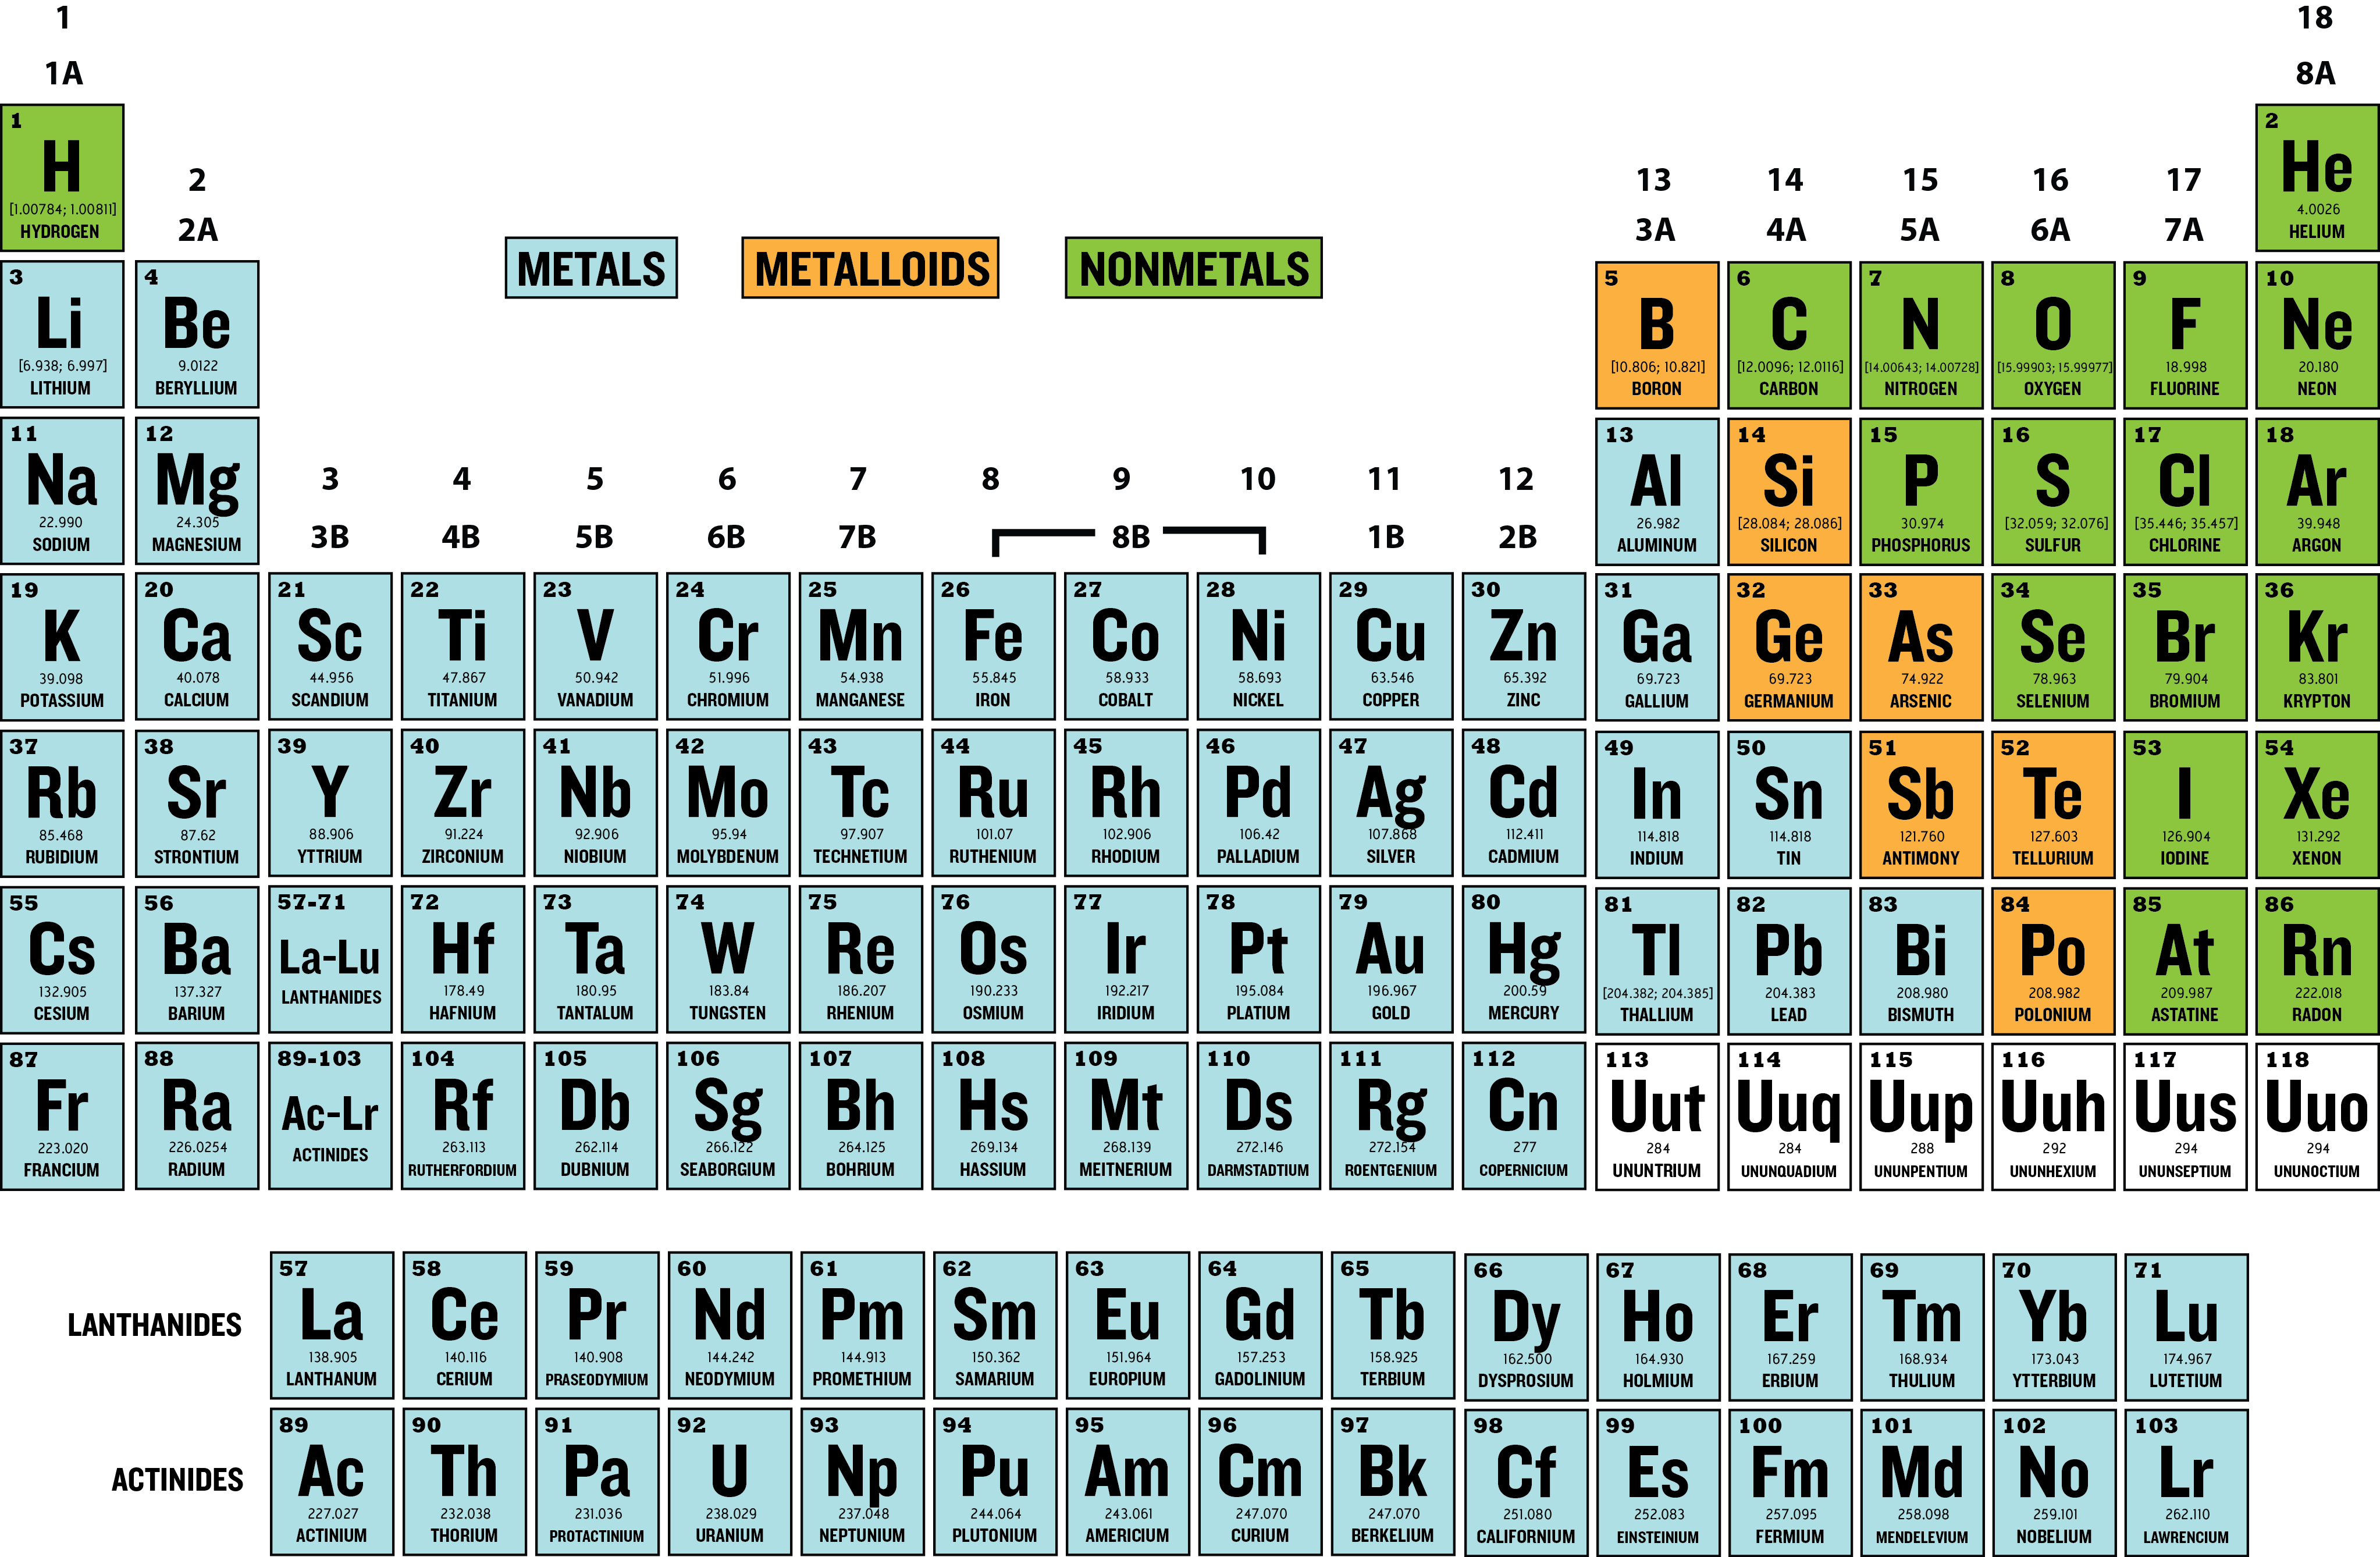 Periodic tables of the elements in american englishmichael canov amer9g gamestrikefo Choice Image